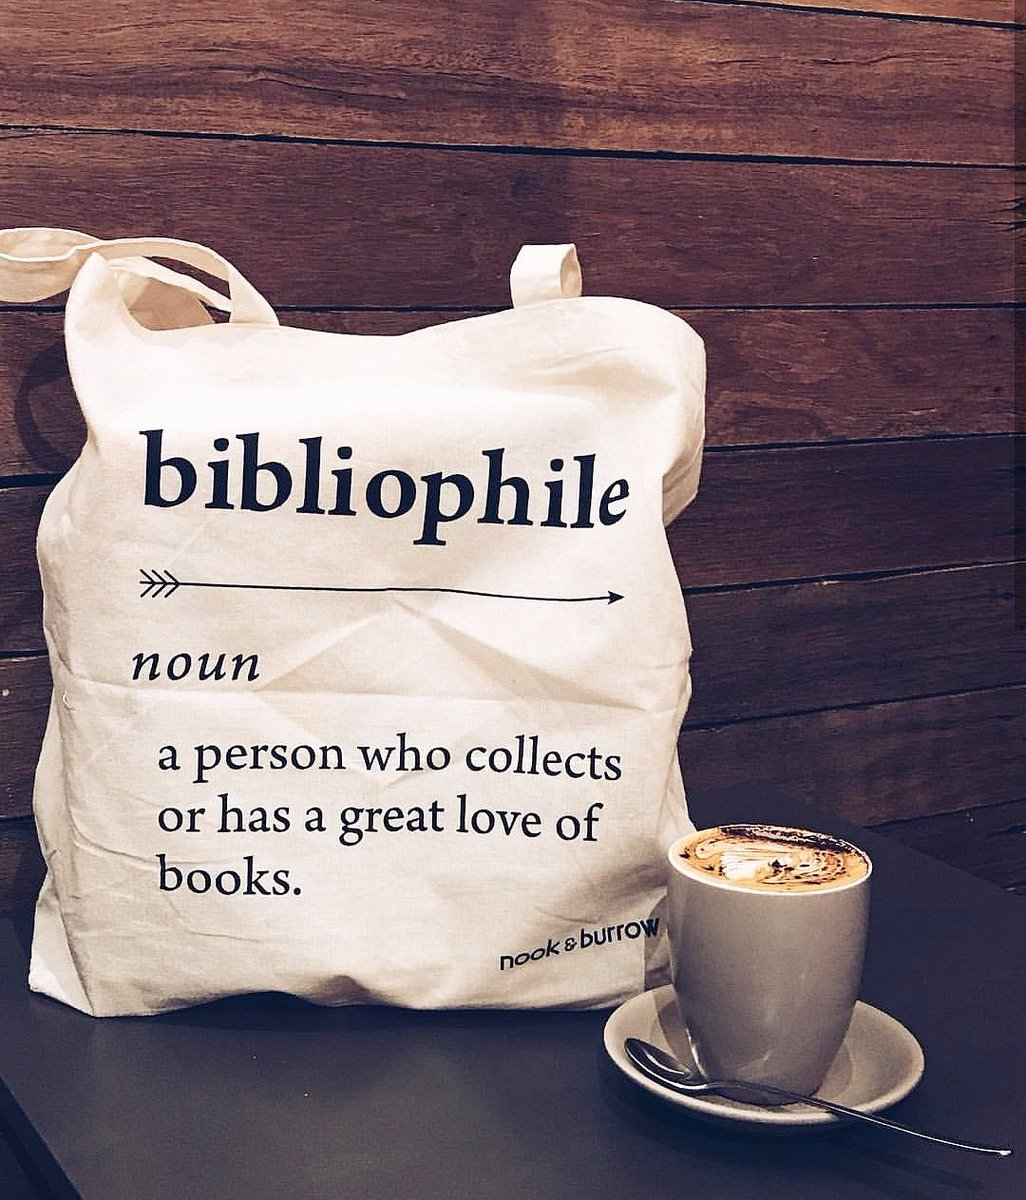 Every booklover needs one of our BIBLIOPHILE tote bags  #nookandburrow #bibliophile <br>http://pic.twitter.com/zIHqA0G3fP